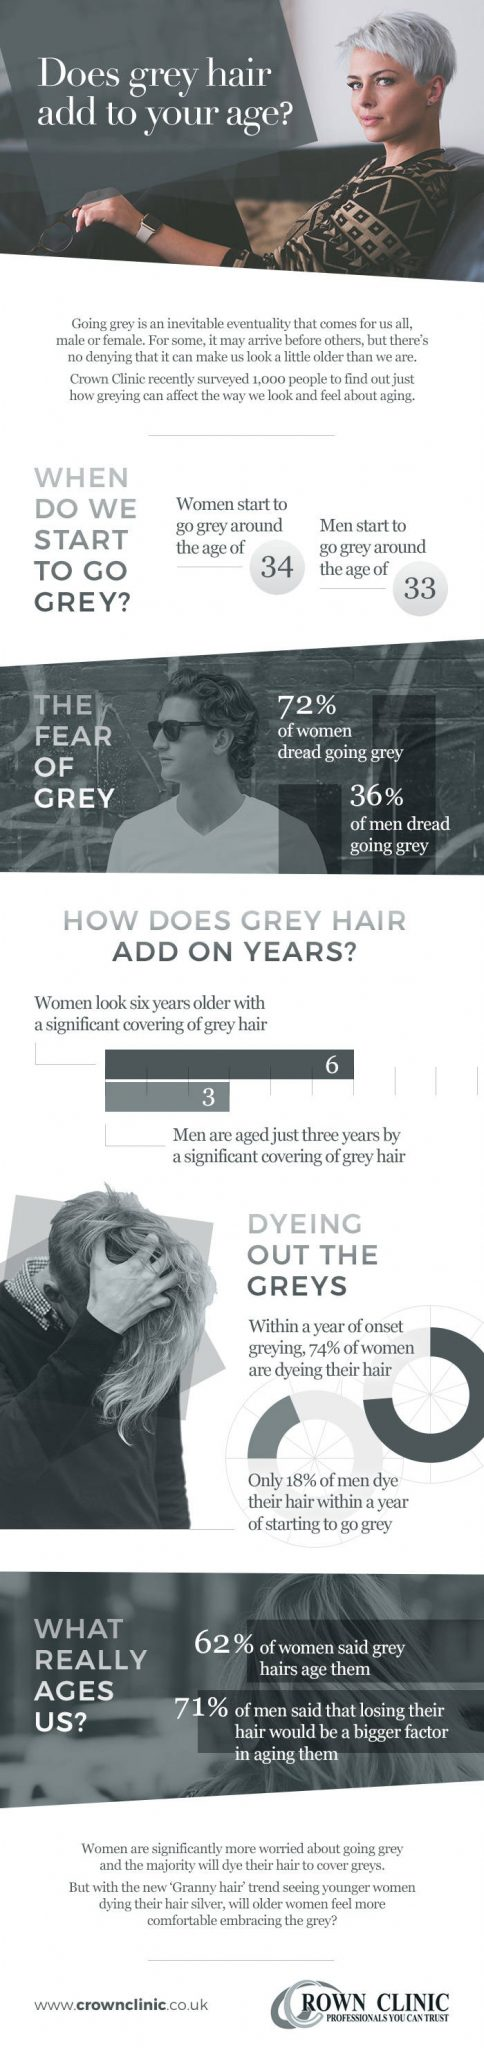 How are grey hairs adding to our age?